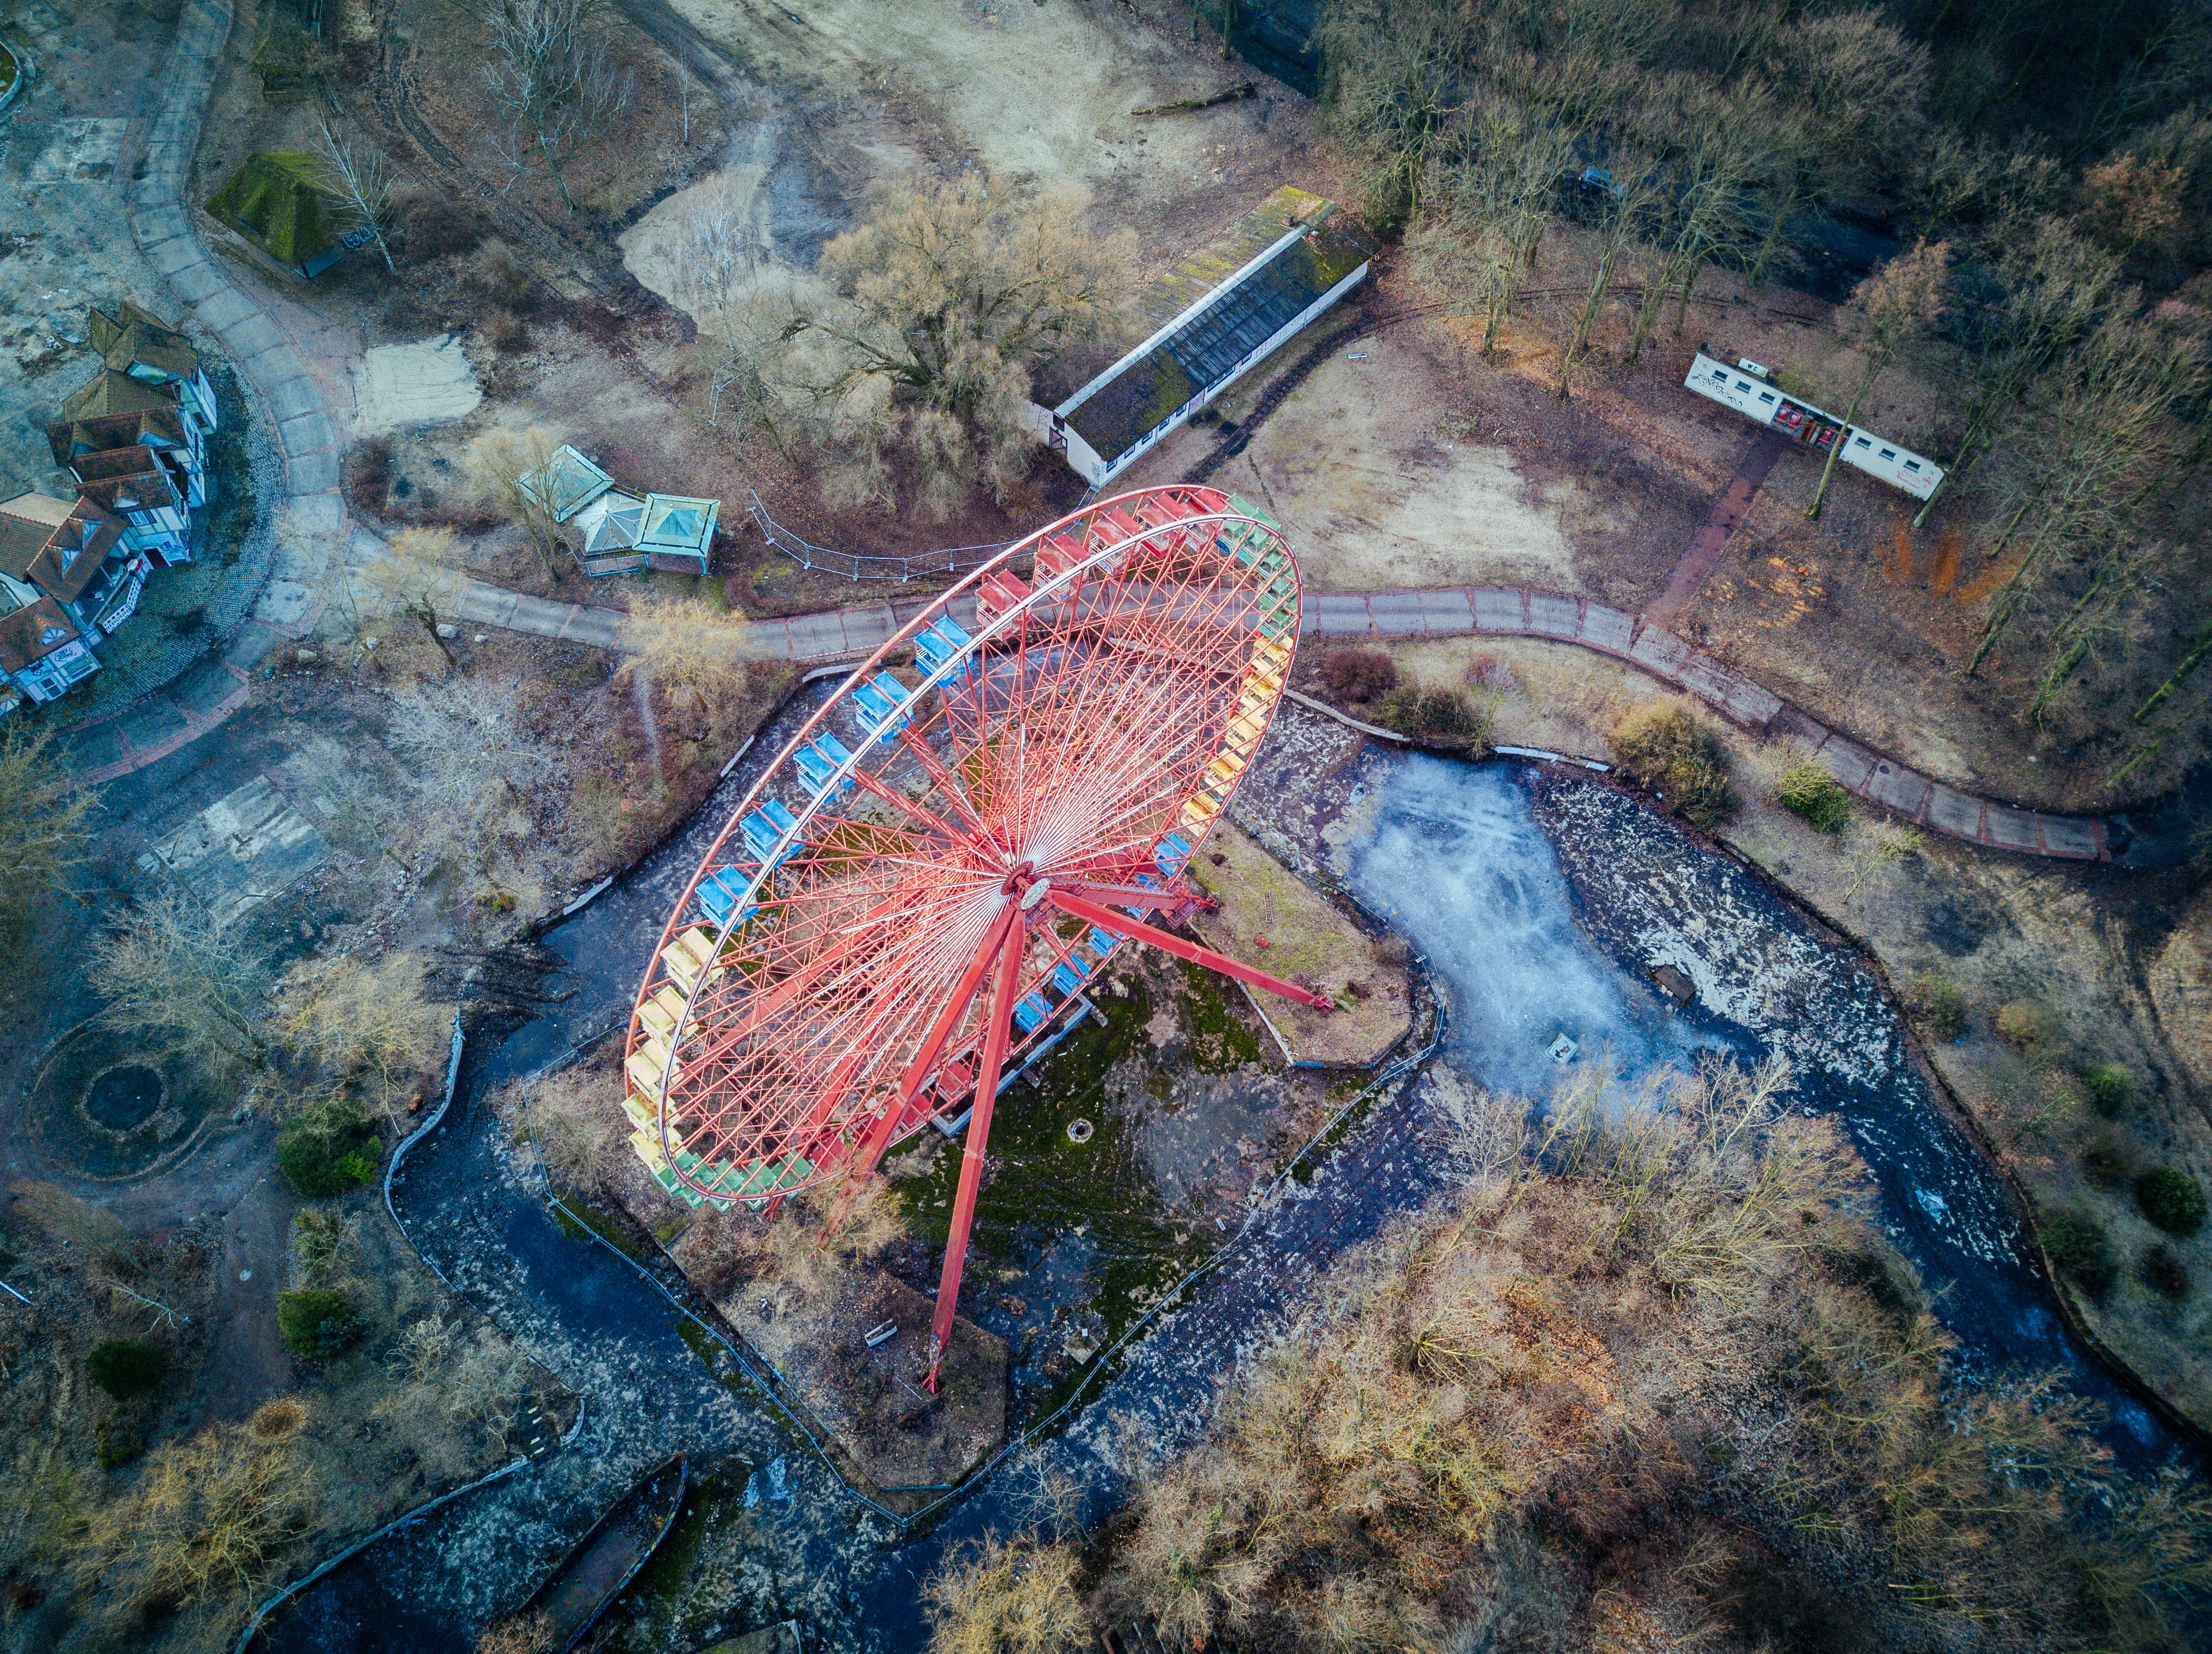 A drone shot of a red Ferris wheel in a desolate area